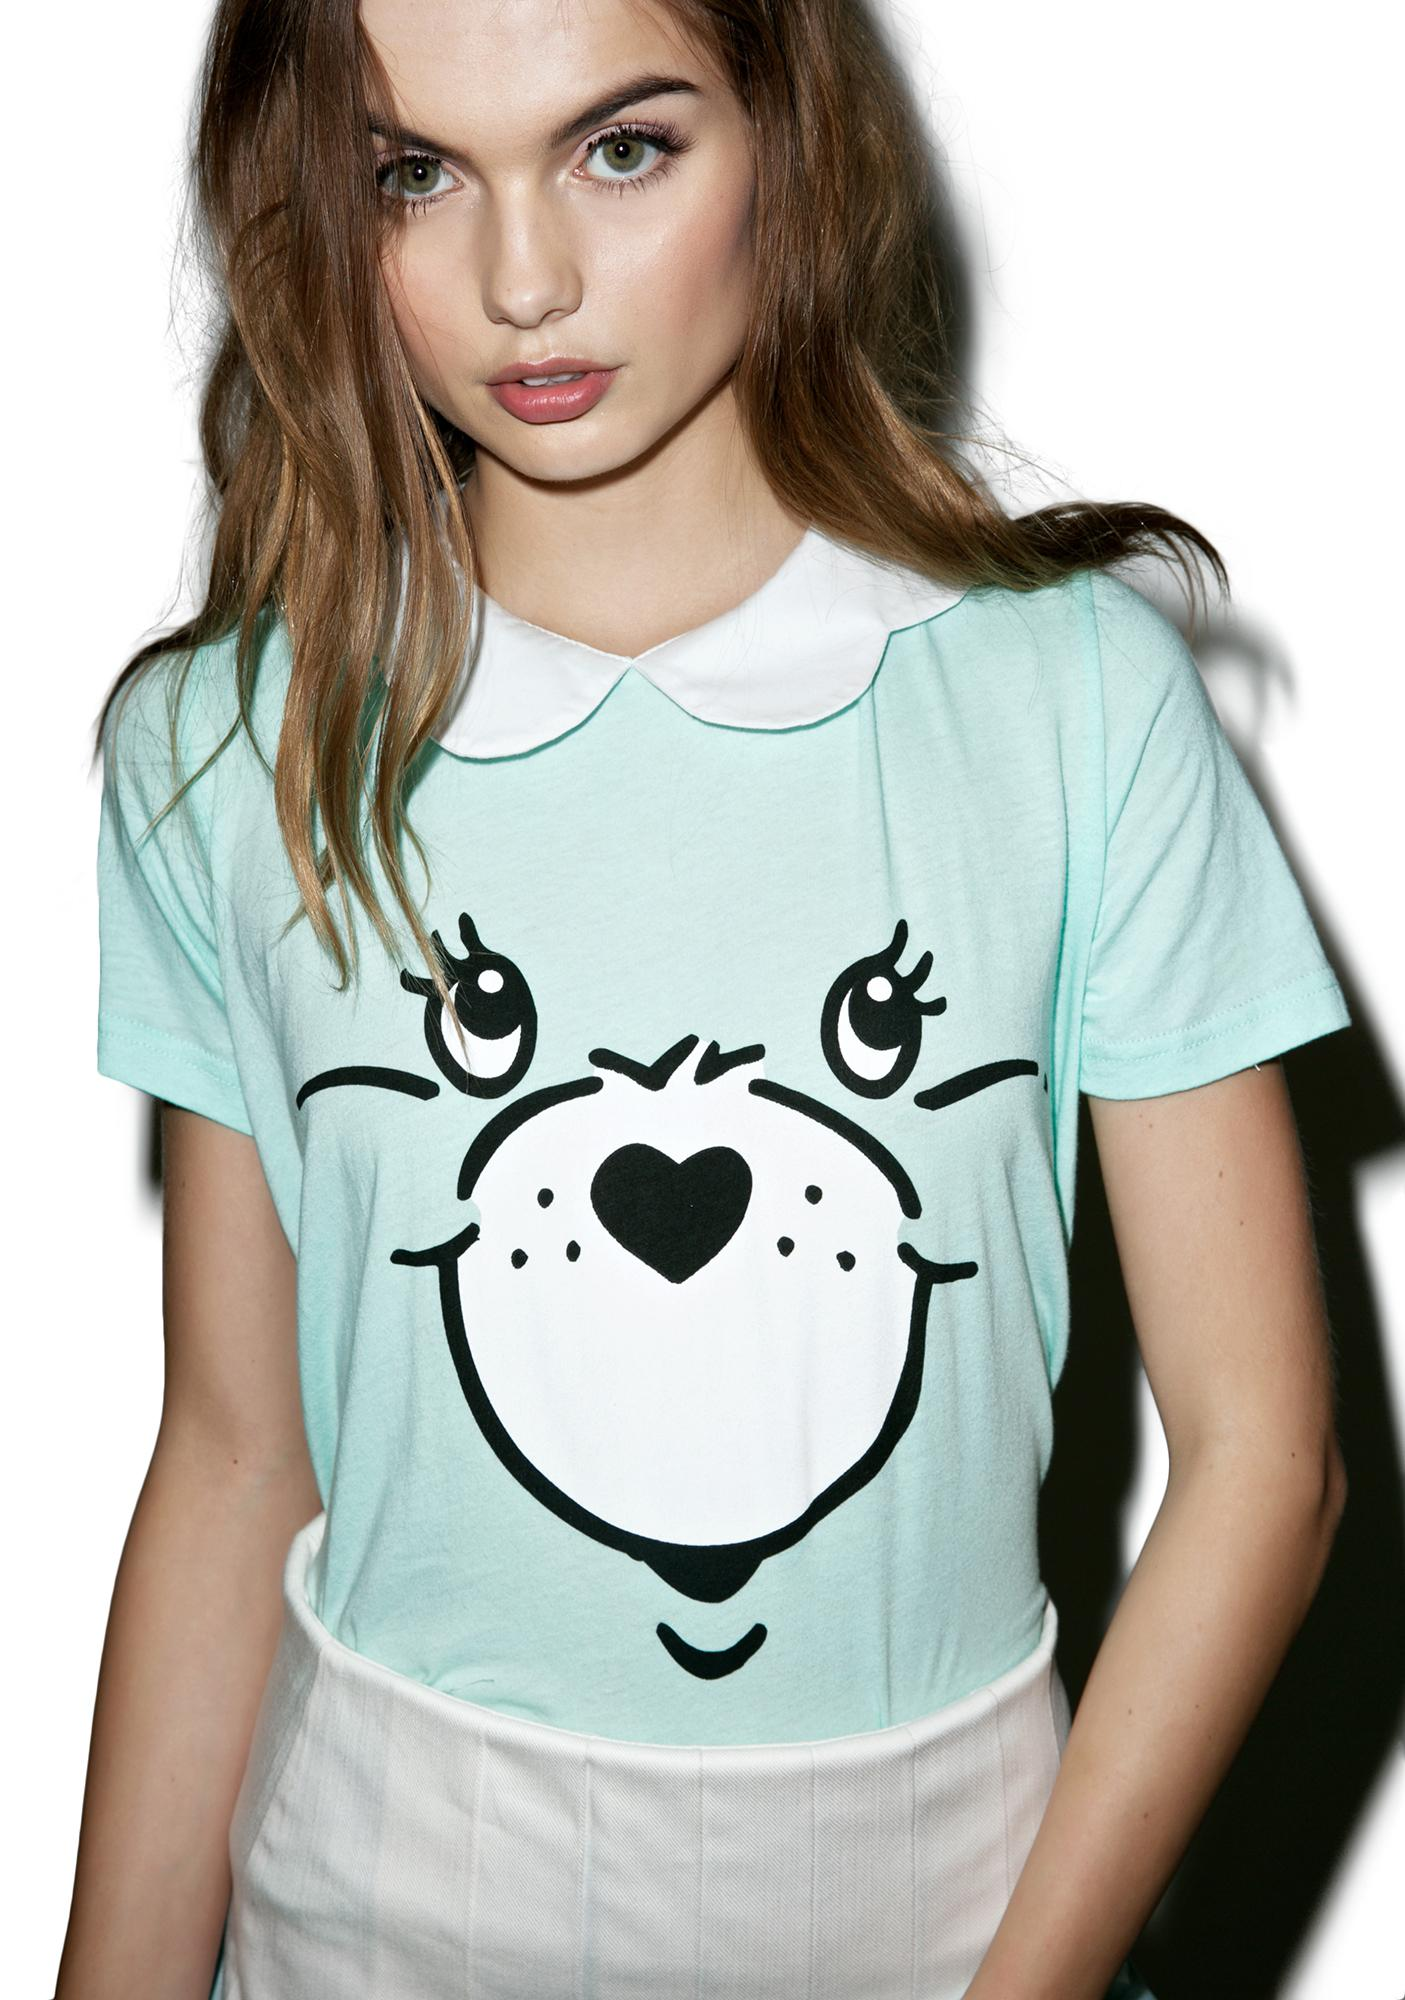 Iron Fist Minty Care Bear Stare Girly Tee